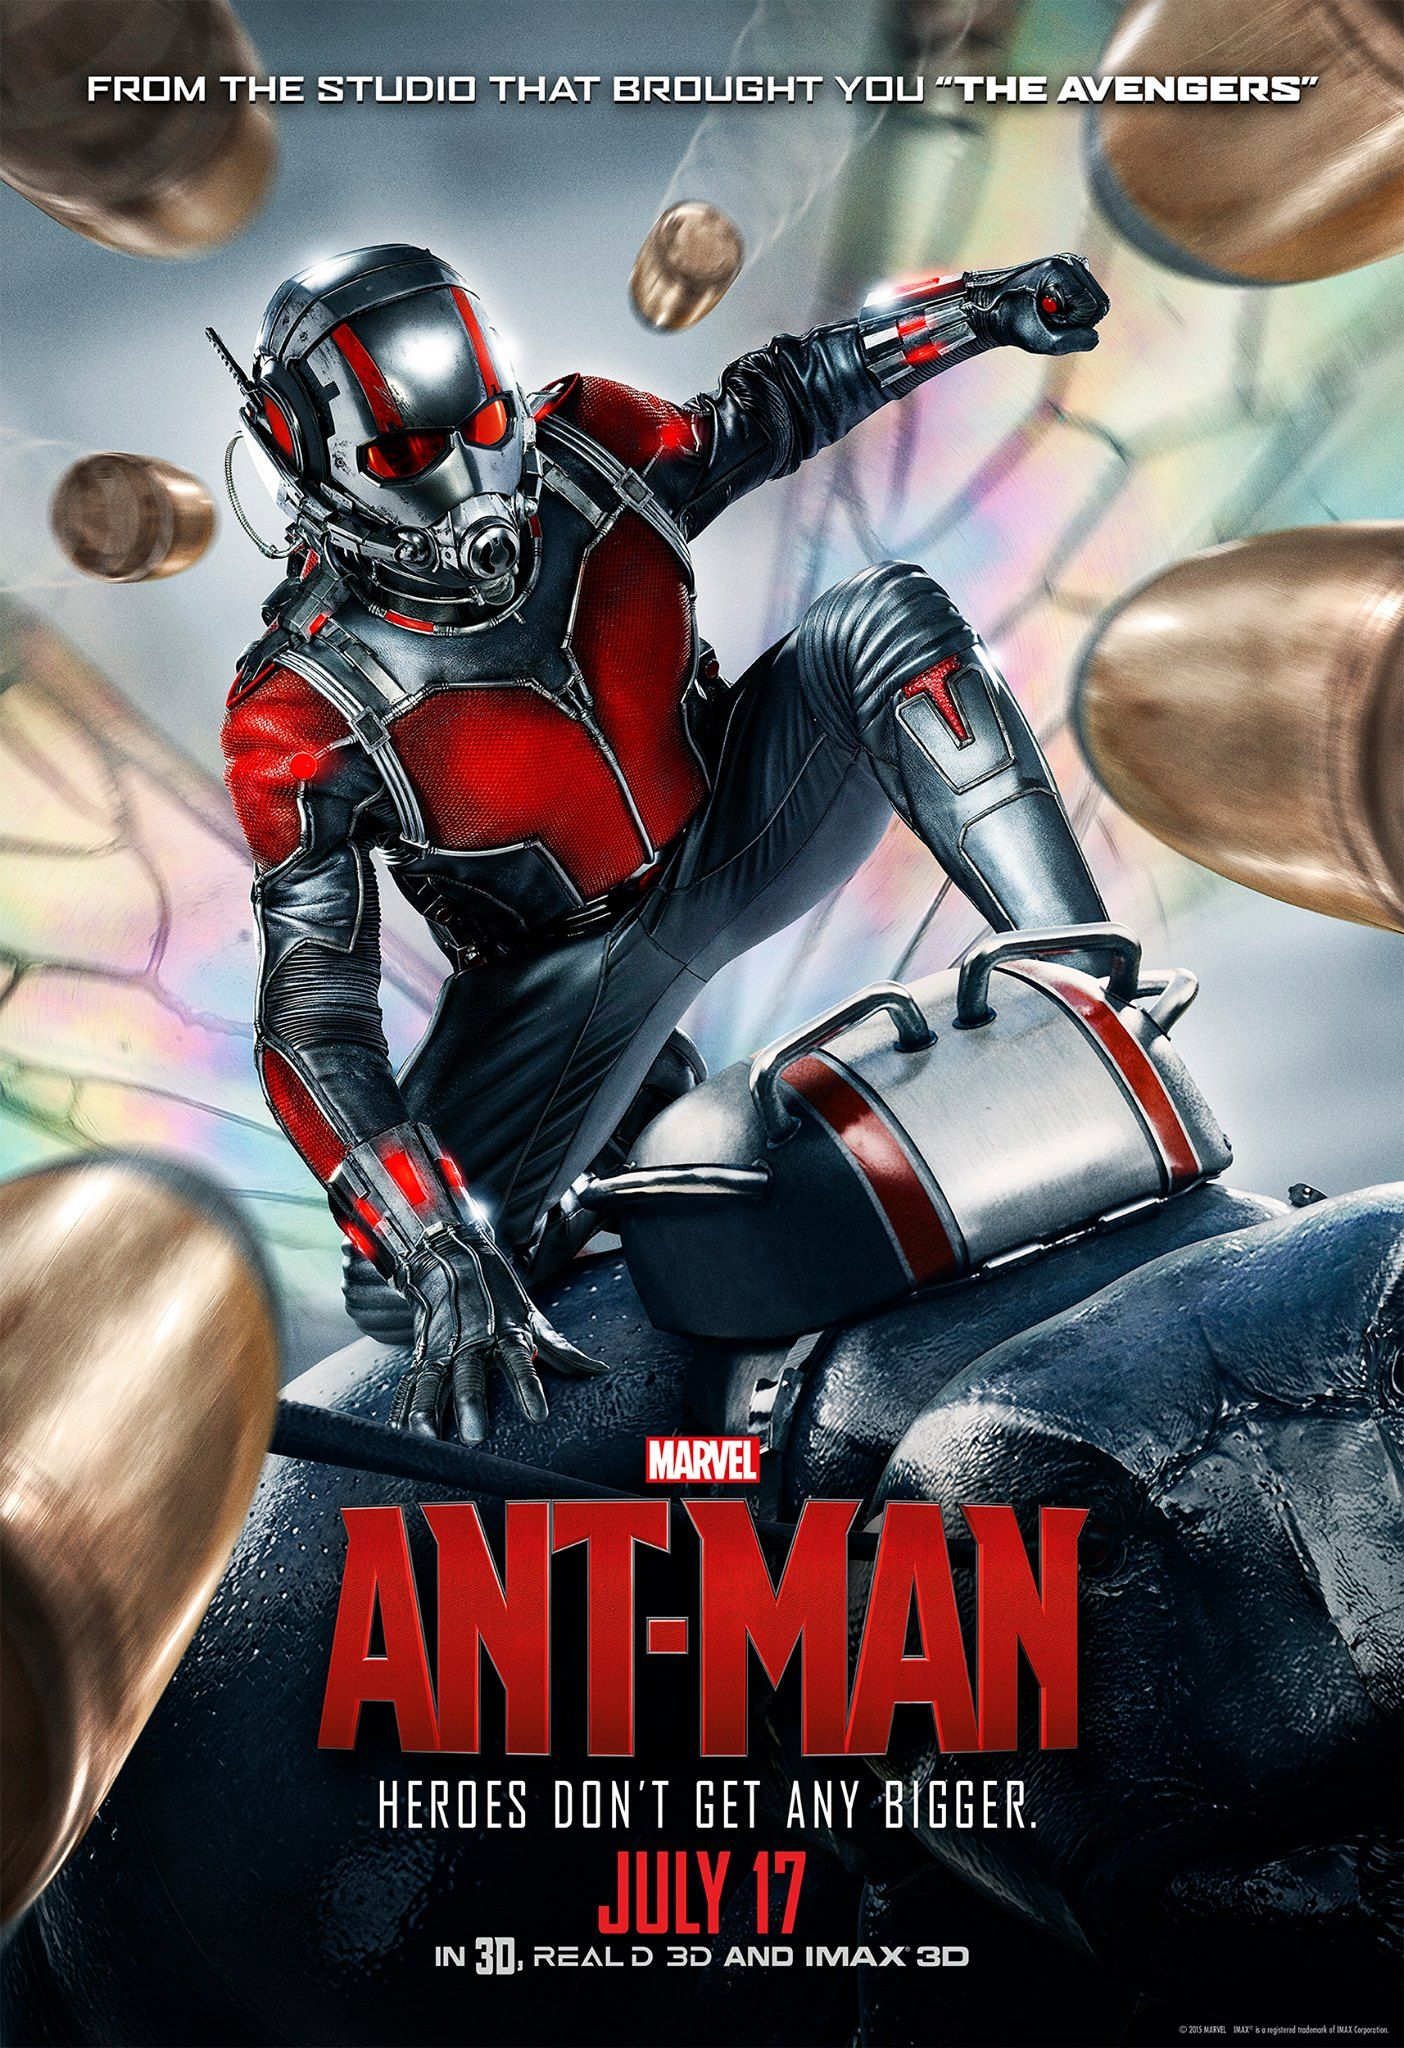 'Ant-Man' Impresses Critics and Rocked The Box Office